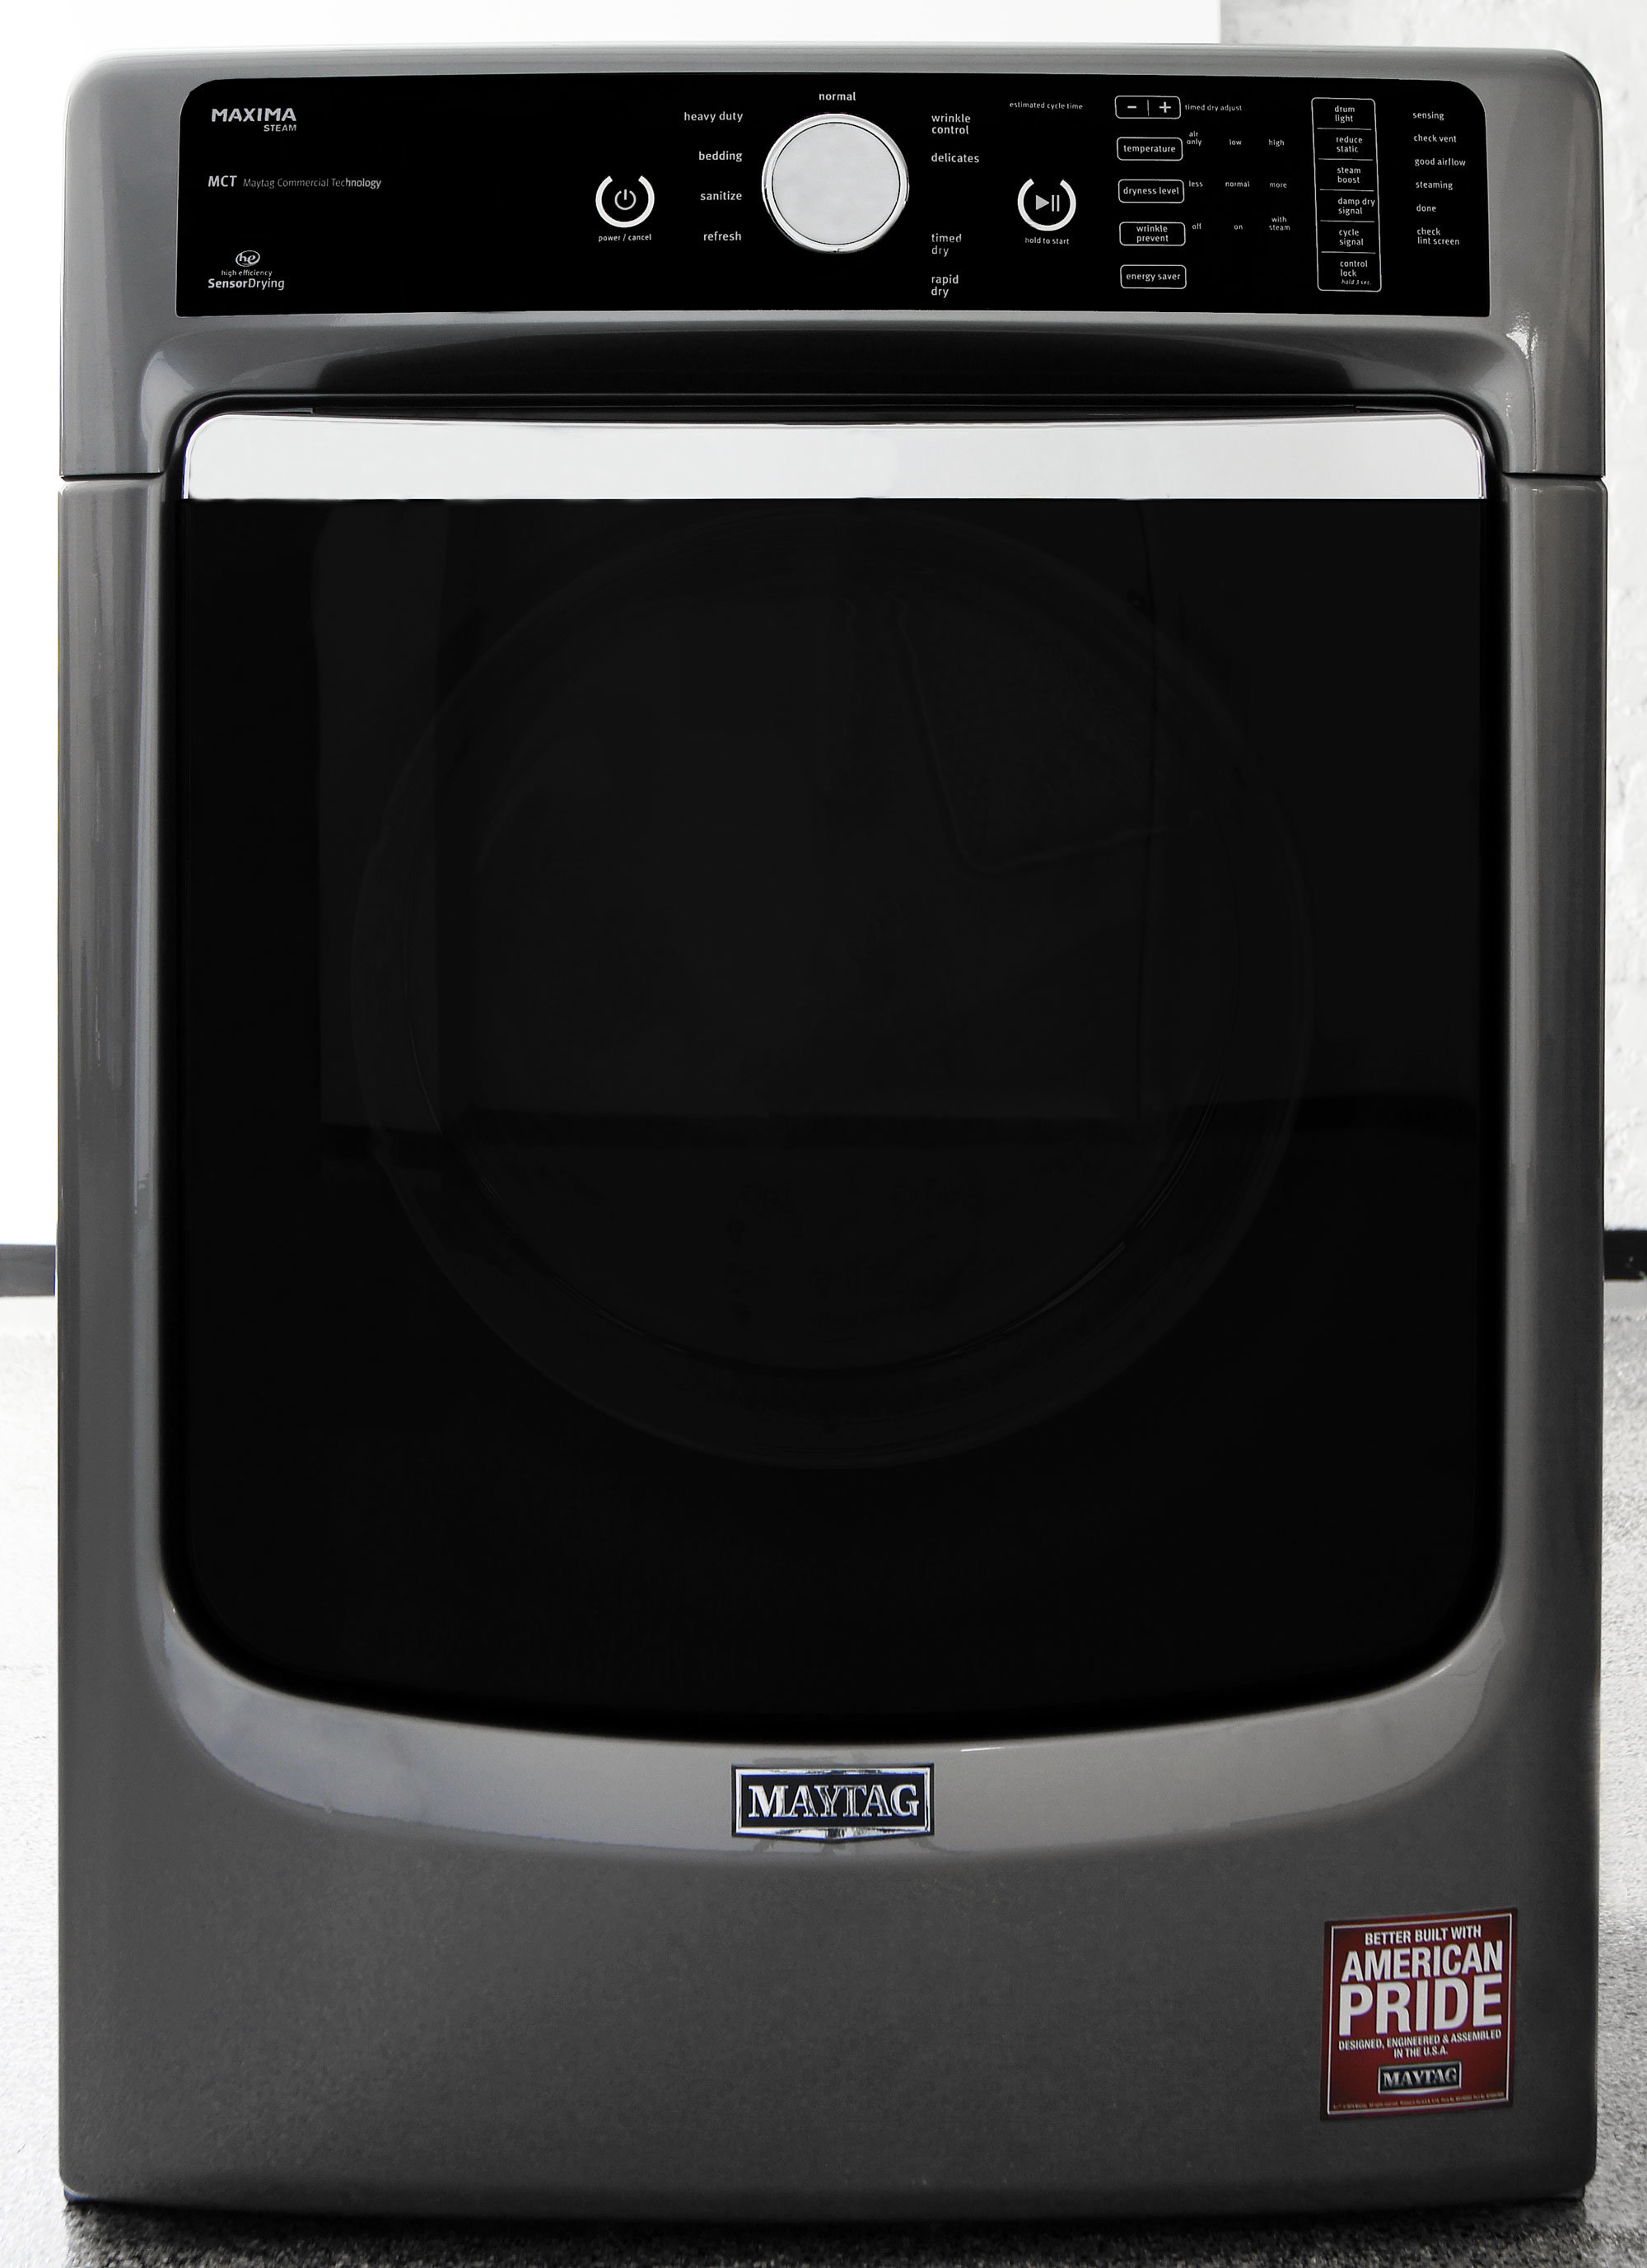 The Maxima MED8100DC dryer has what Maytag calls a Metallic Slate finish.